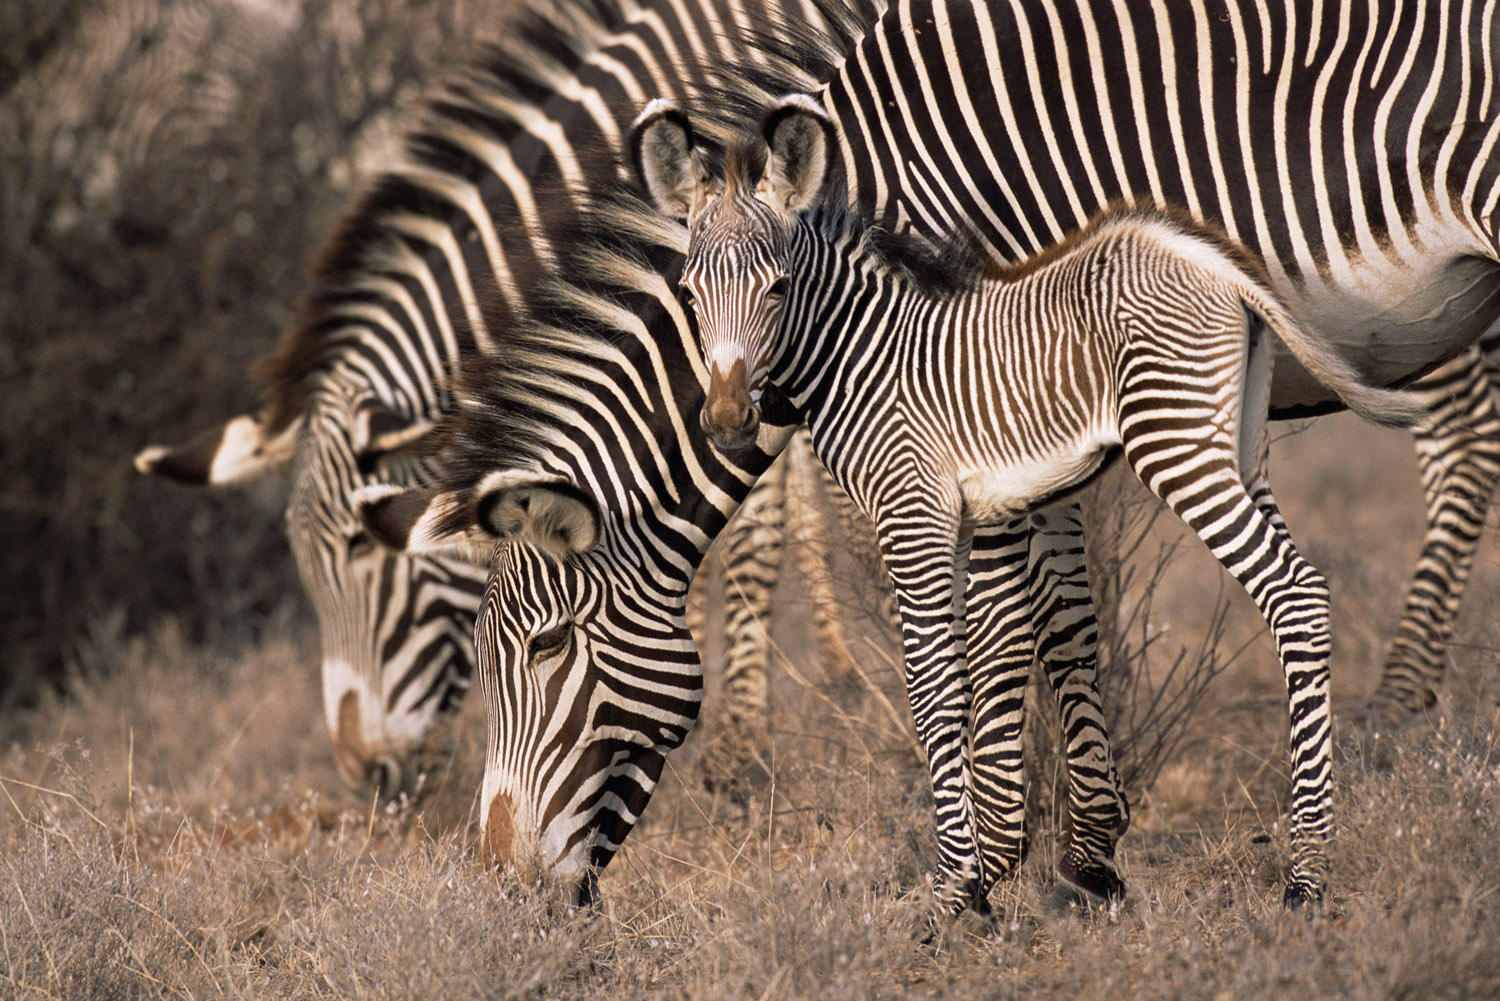 Grévy's zebra foal with mother, Samburu National Reserve, Kenya